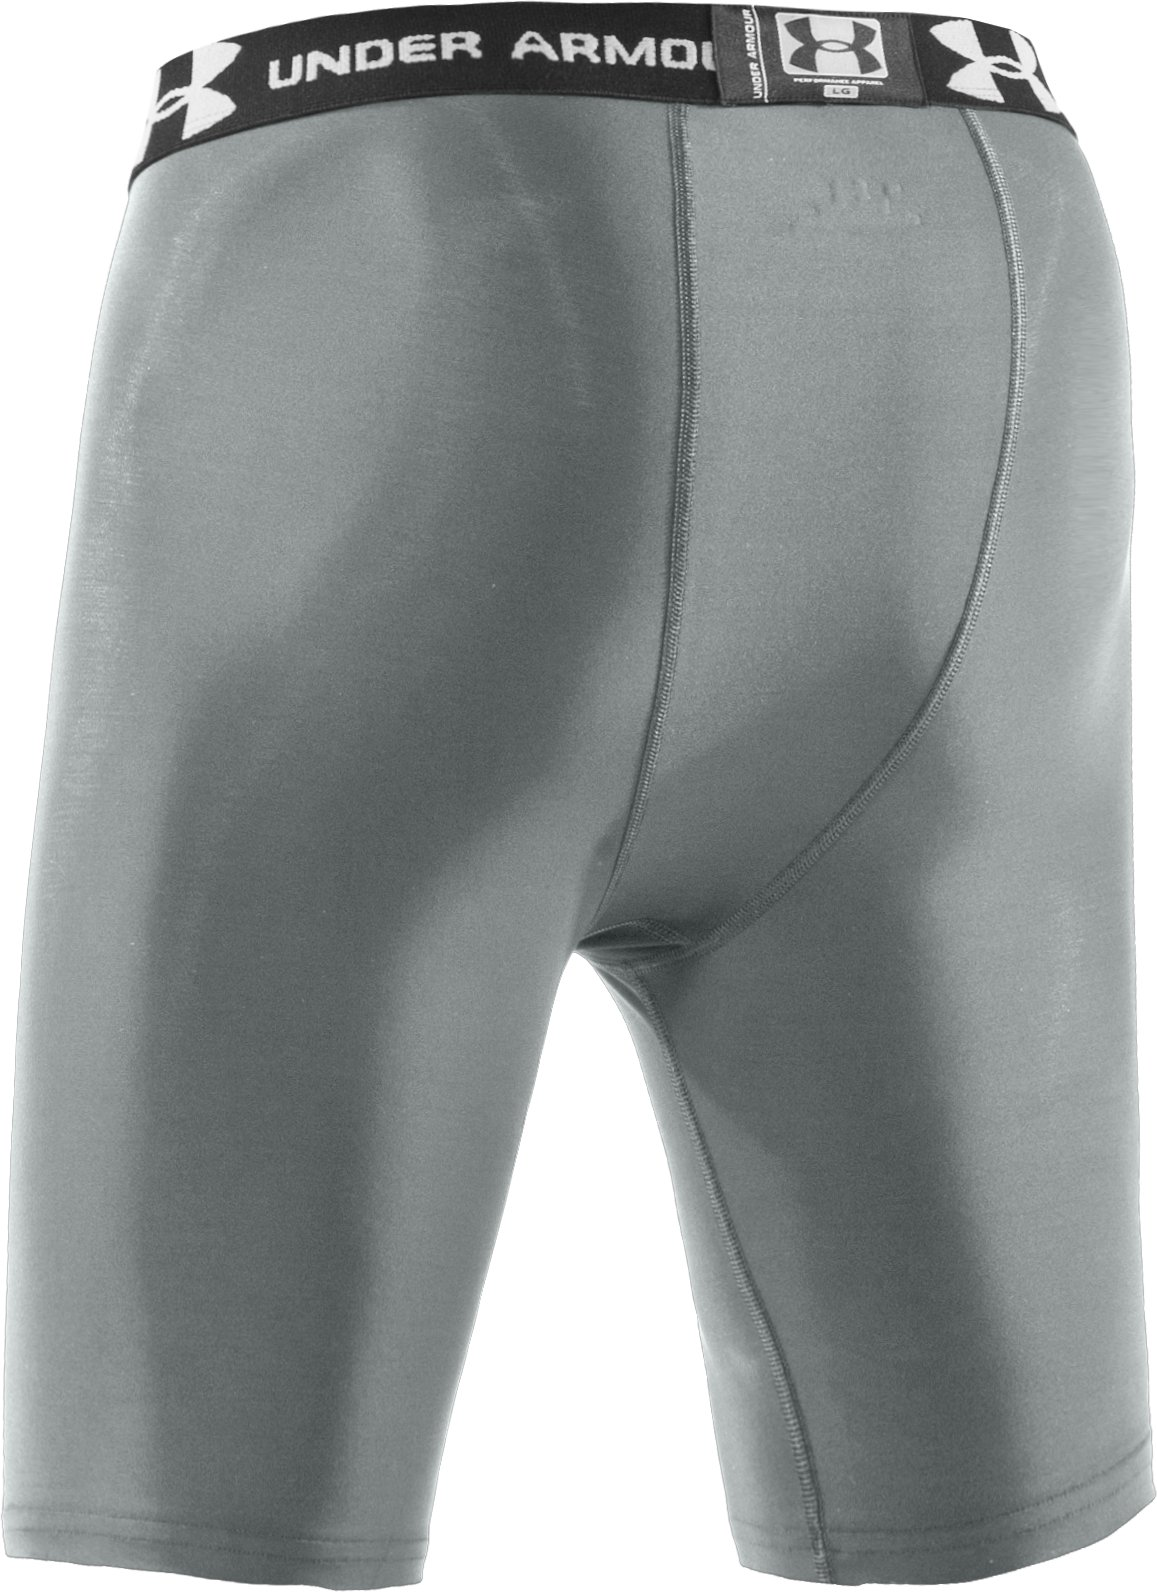 "Men's HeatGear® Compression 7"" Shorts, Gray, undefined"